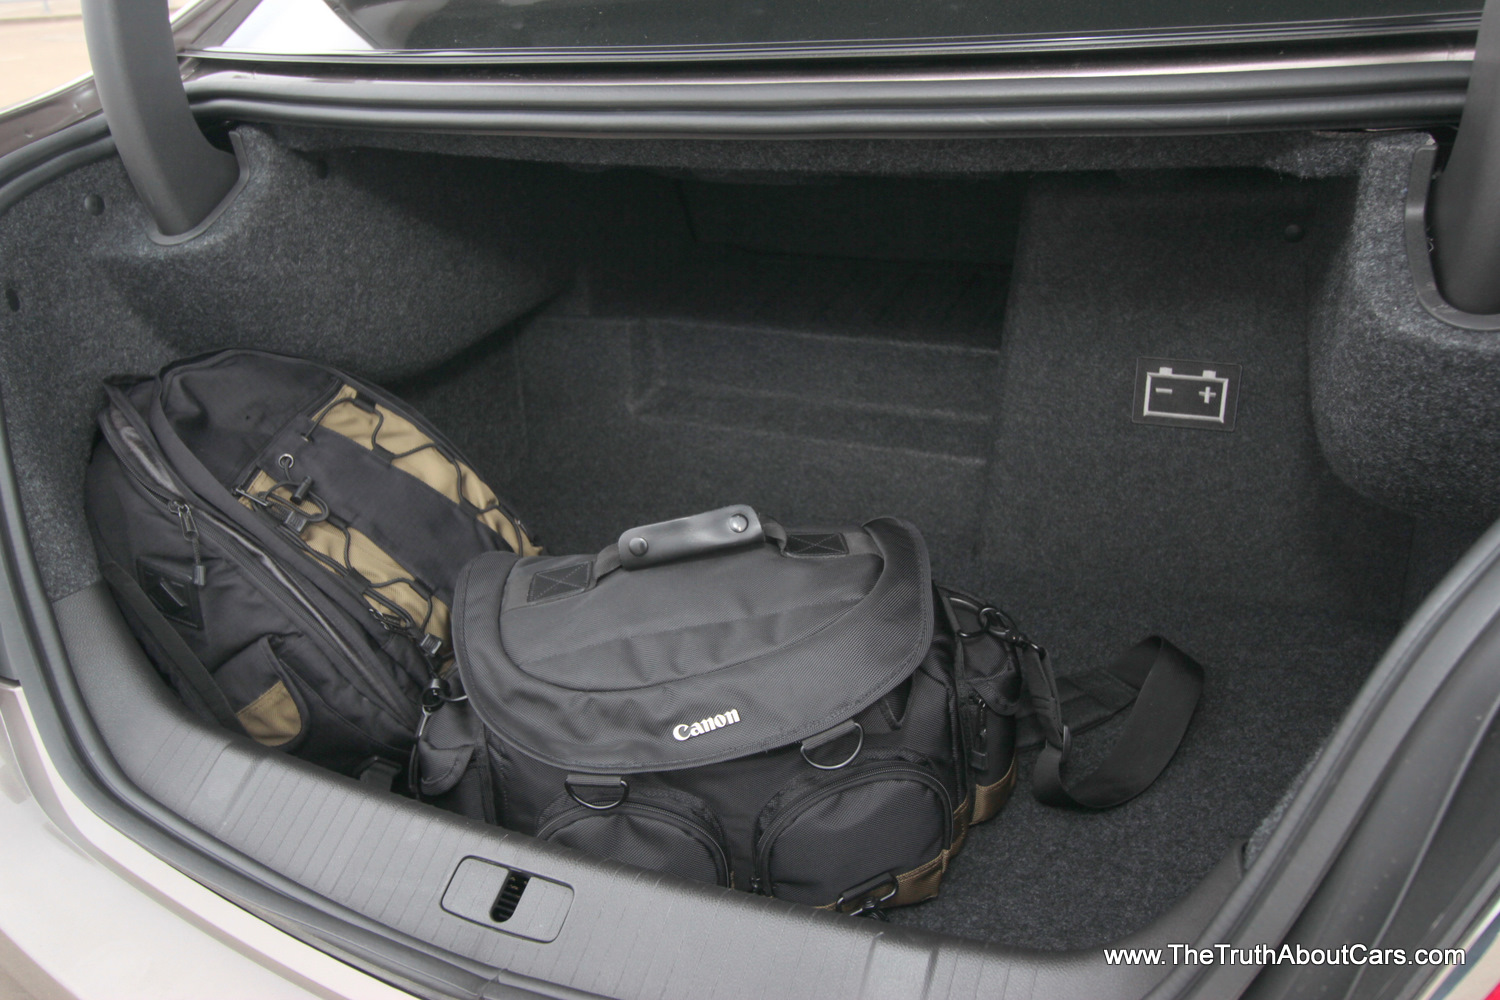 Review: 2012 Buick LaCrosse eAssist - The Truth About Cars